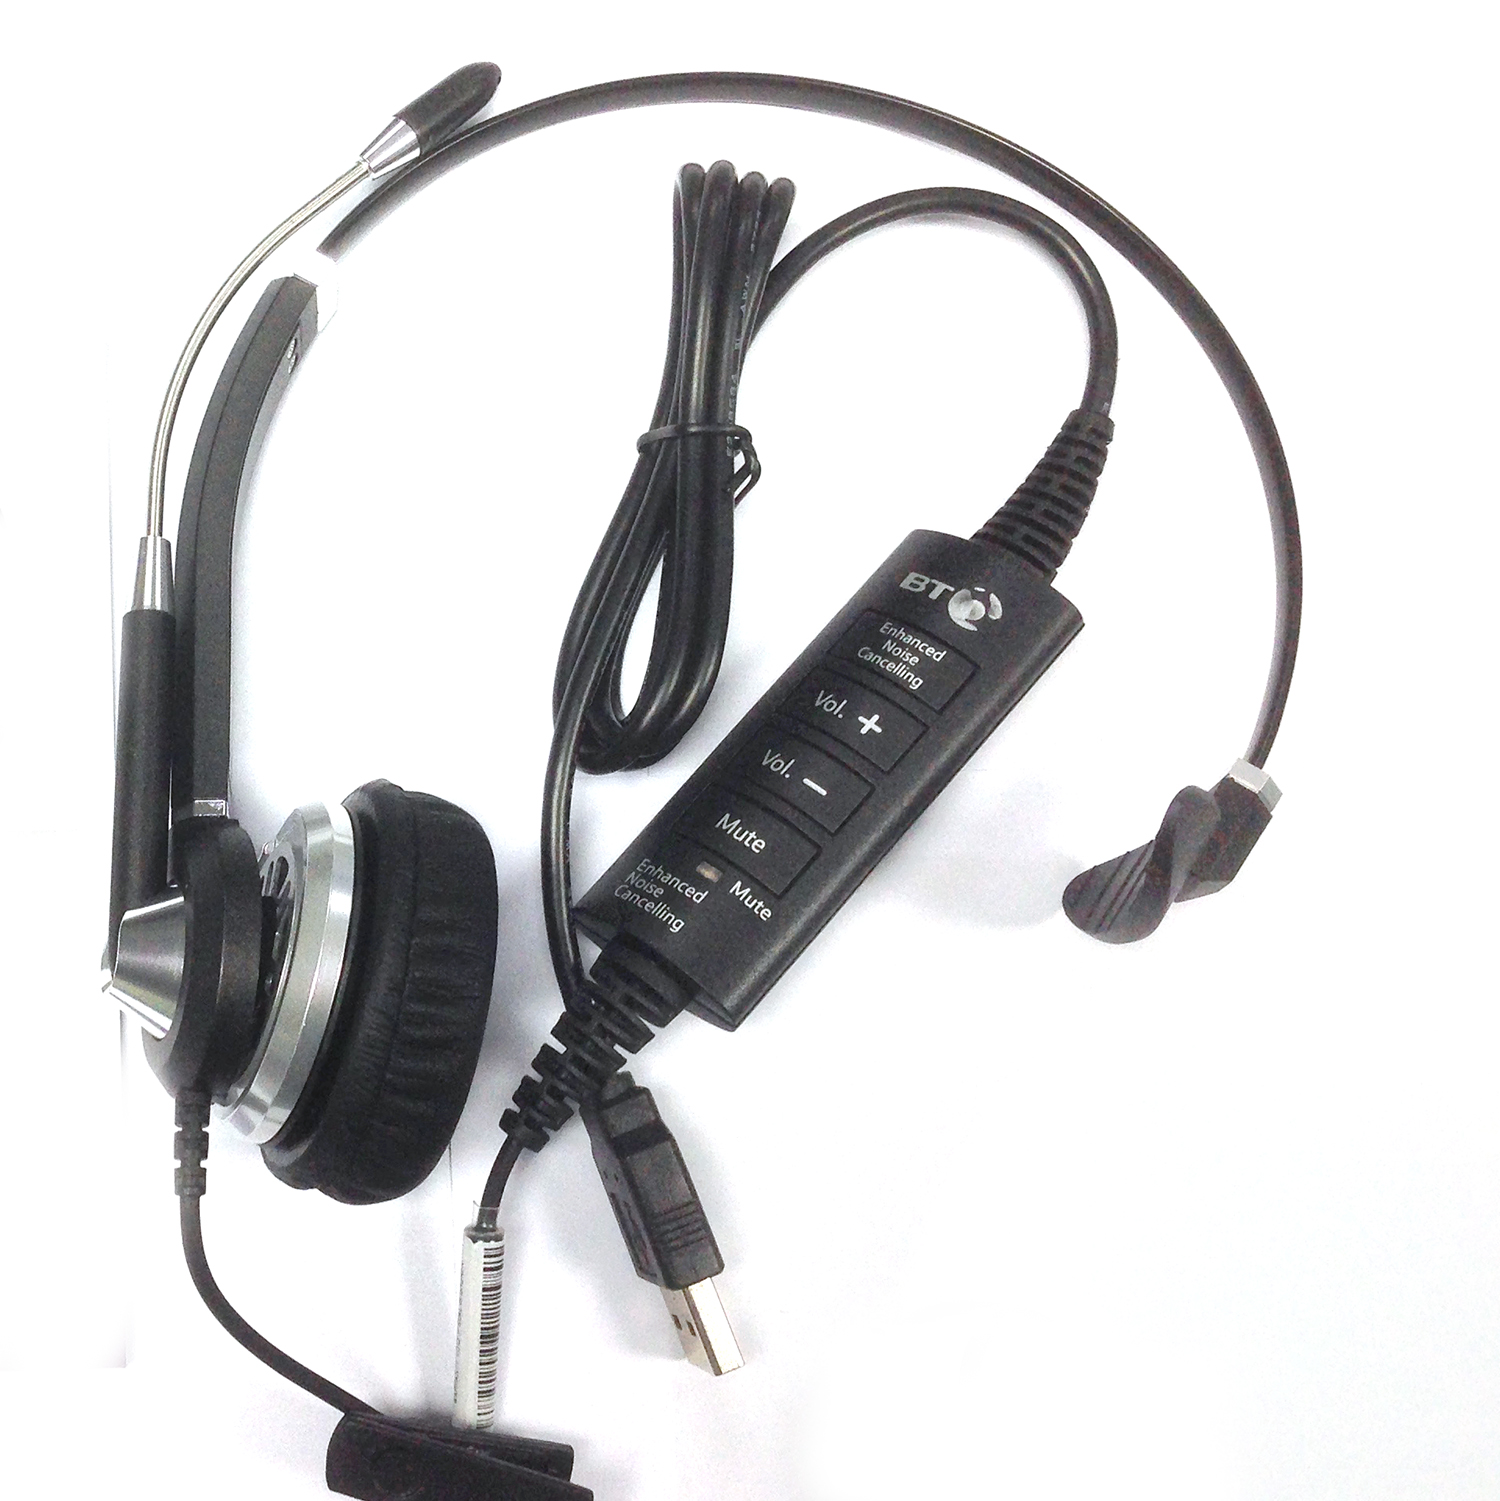 BT H32 Monaural Noise Cancelling USB Headset